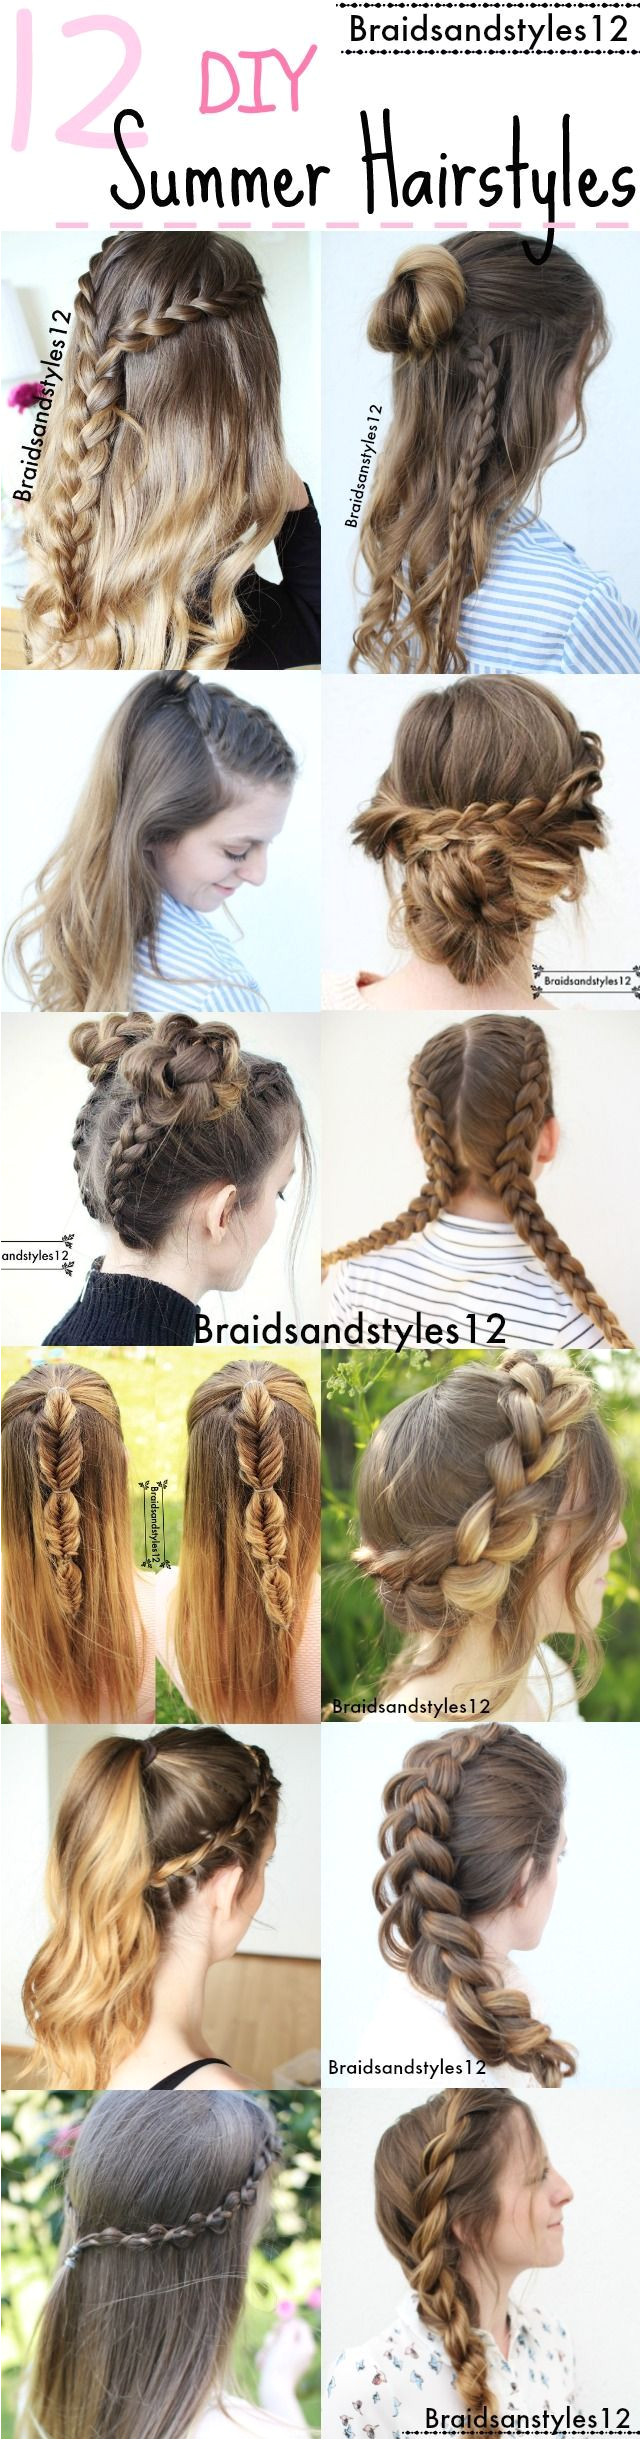 12 Gorgeous DIY Summer Hairstyle Ideas by Braidsanstyles12 Beachy Hairstyles by Braidsandstyles12 beautyhairstyles Beauty Hairstyles